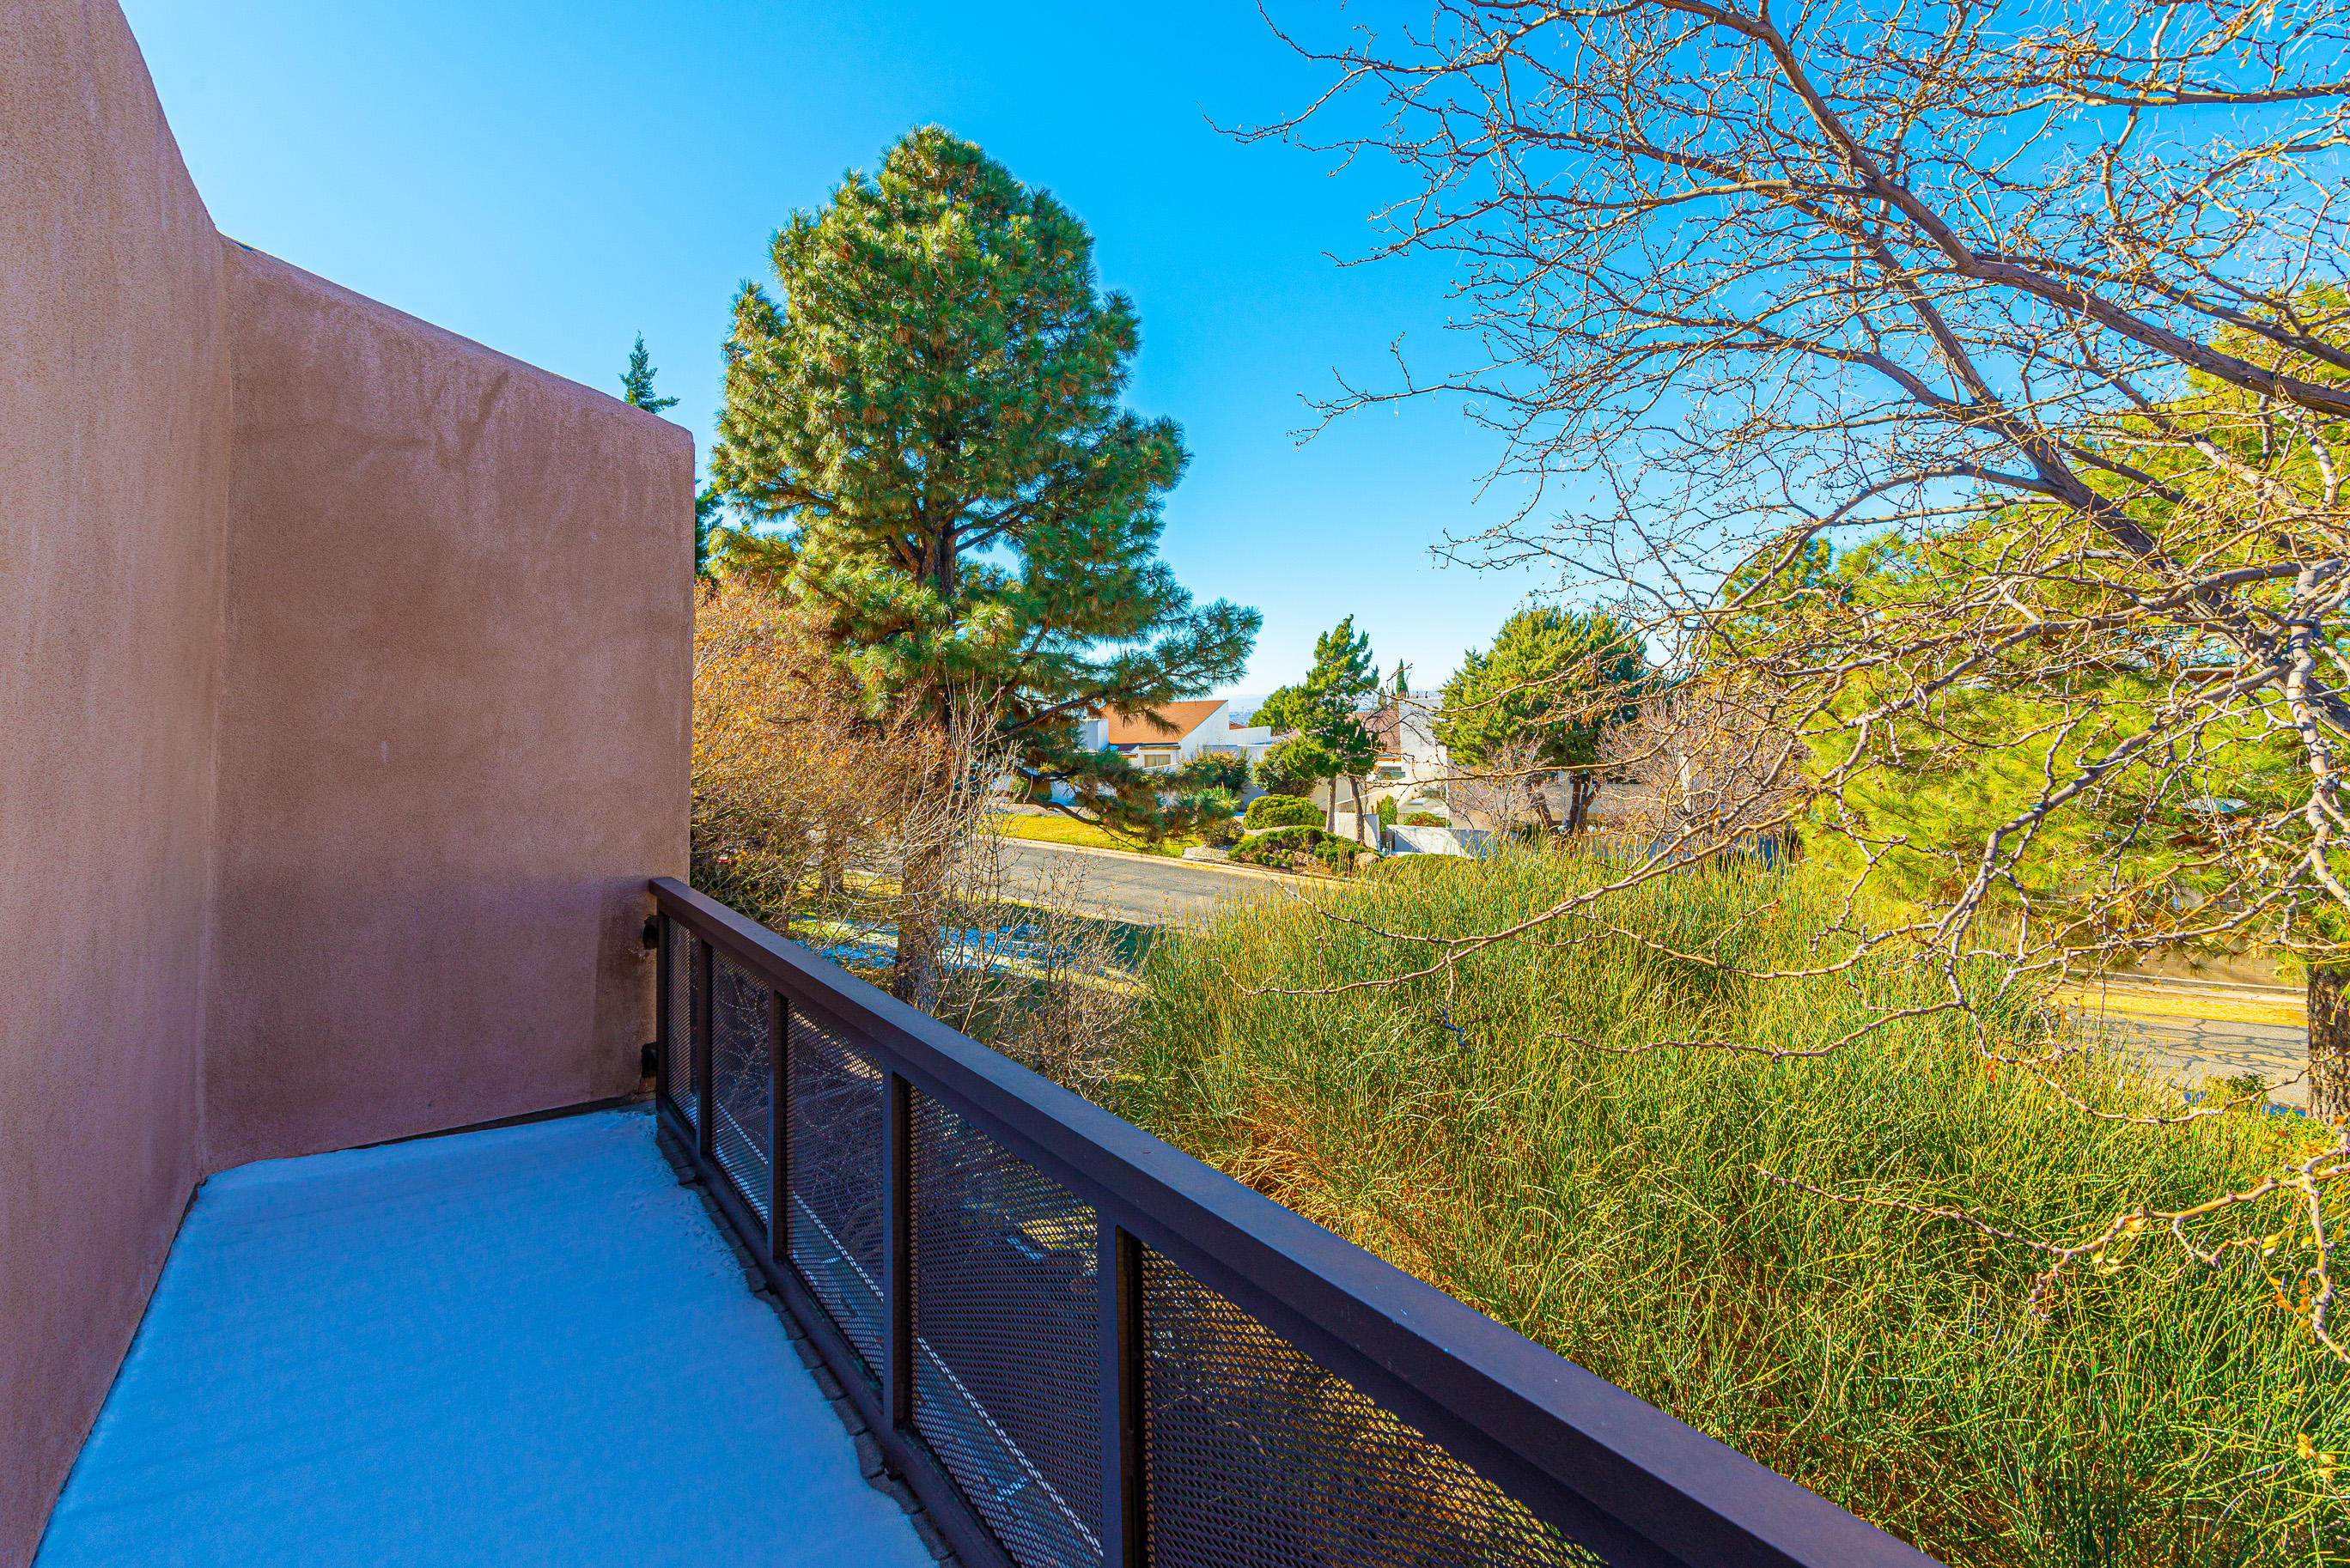 Wonderful condo.  2 bed 2 bath;  Two decks with wonderful foothill views.  One on the west and the other on the east.  Amazing views from both.  Flooring is amazing.  Two story condo that feels very spacious.  A must see!!!!!